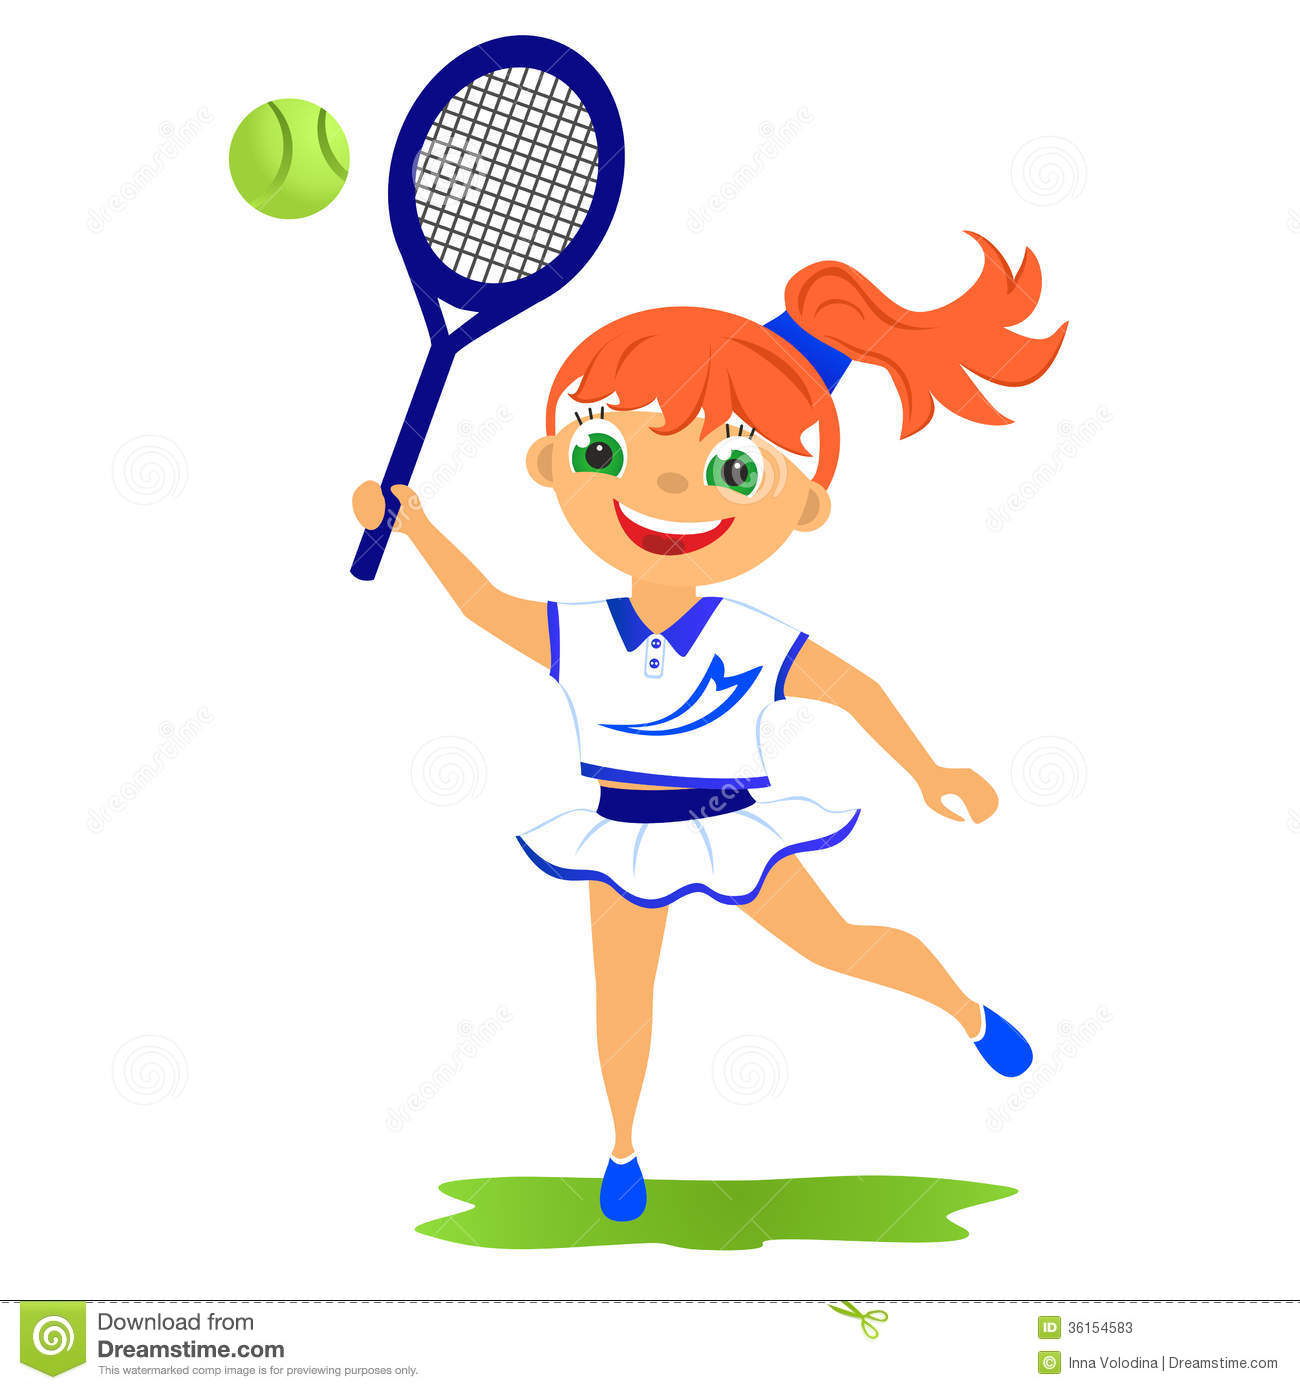 Childrens sport in summertime. Girl tennis player.